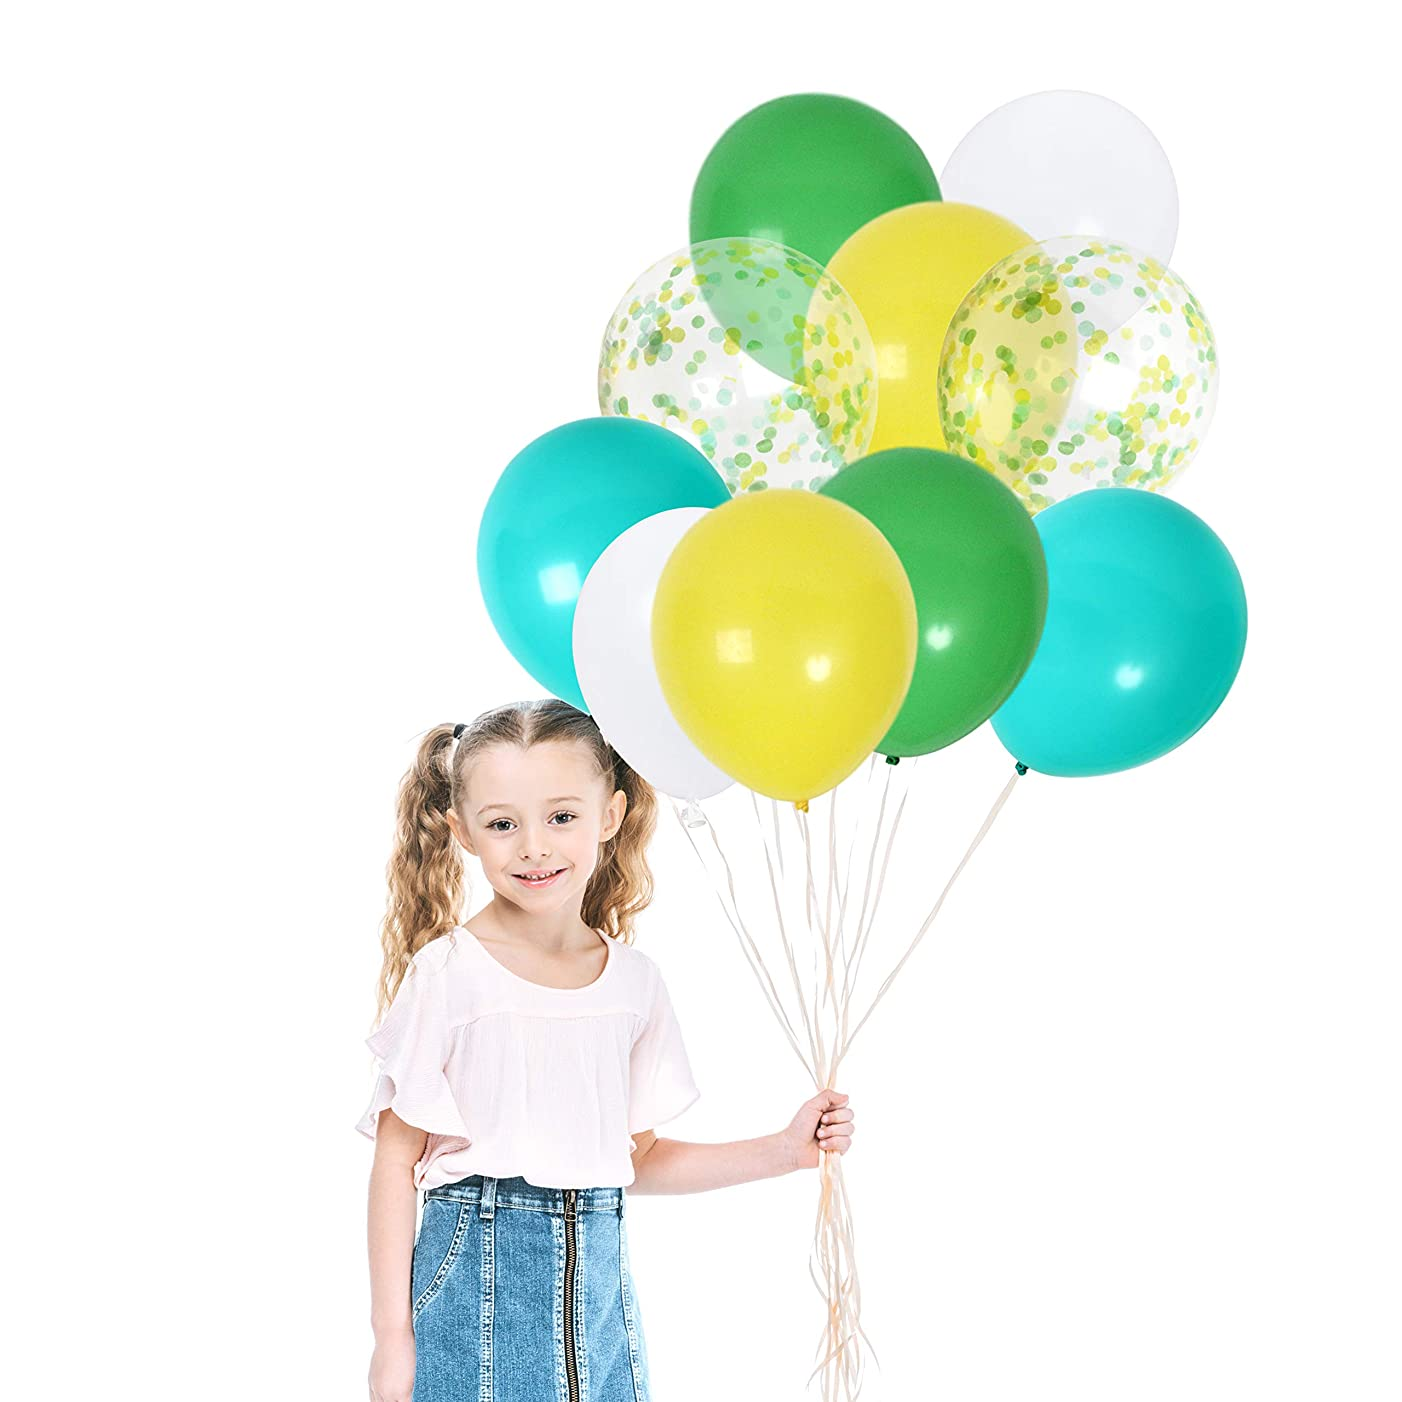 Treasures Gifted Jungle Theme Party Supplies Italian Soccer Dinosaur Birthday Green Baby Shower Decorations Latex Balloons for Bee Themed Sunshine Gender Neutral Decor